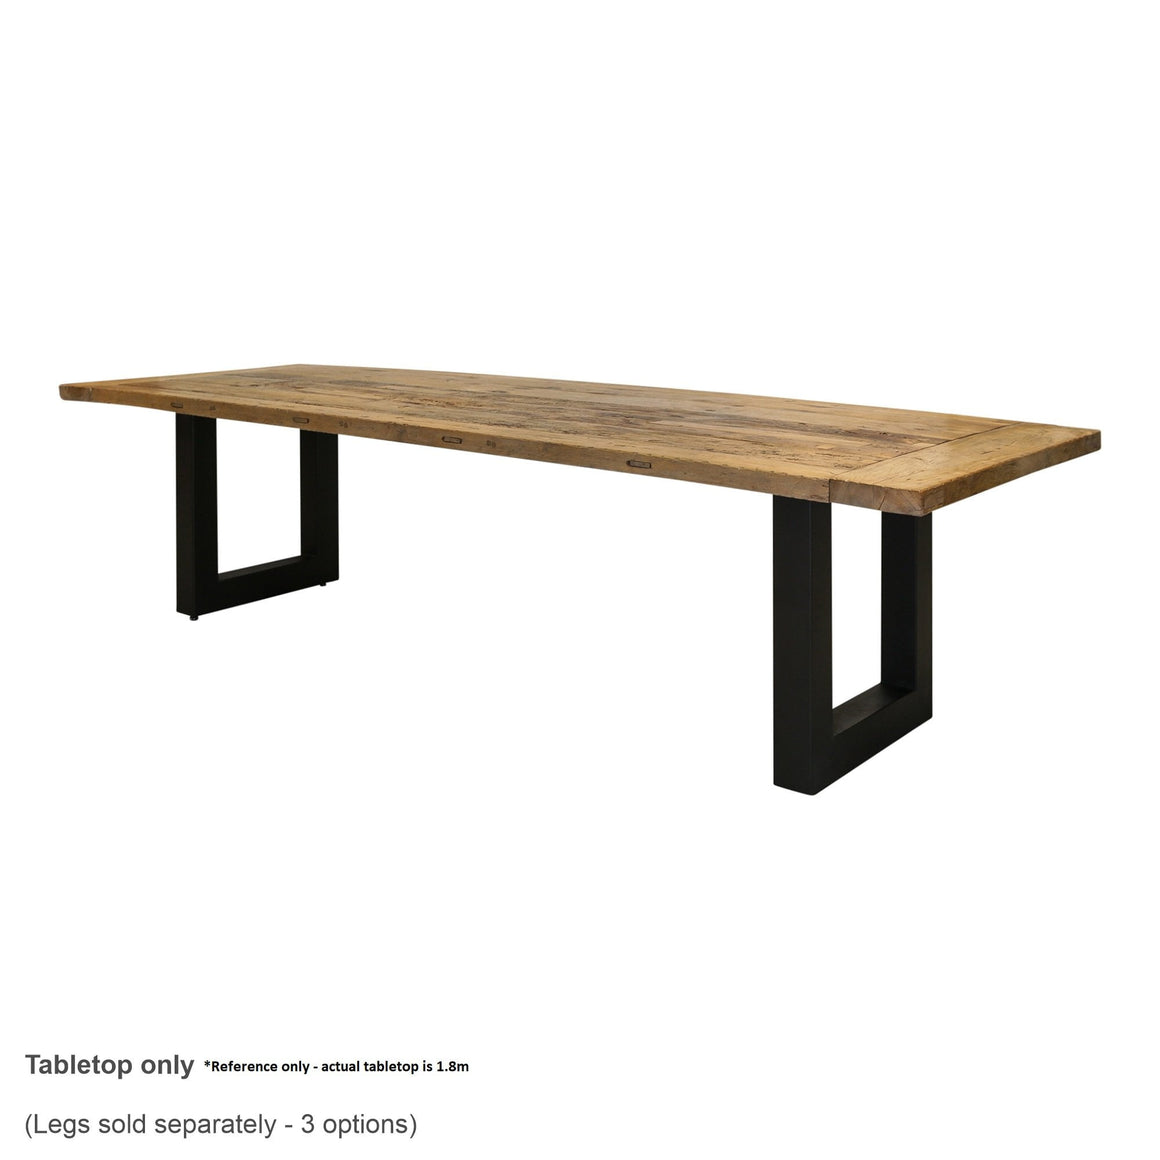 Boatwood Tabletop 2.2M - Top Only